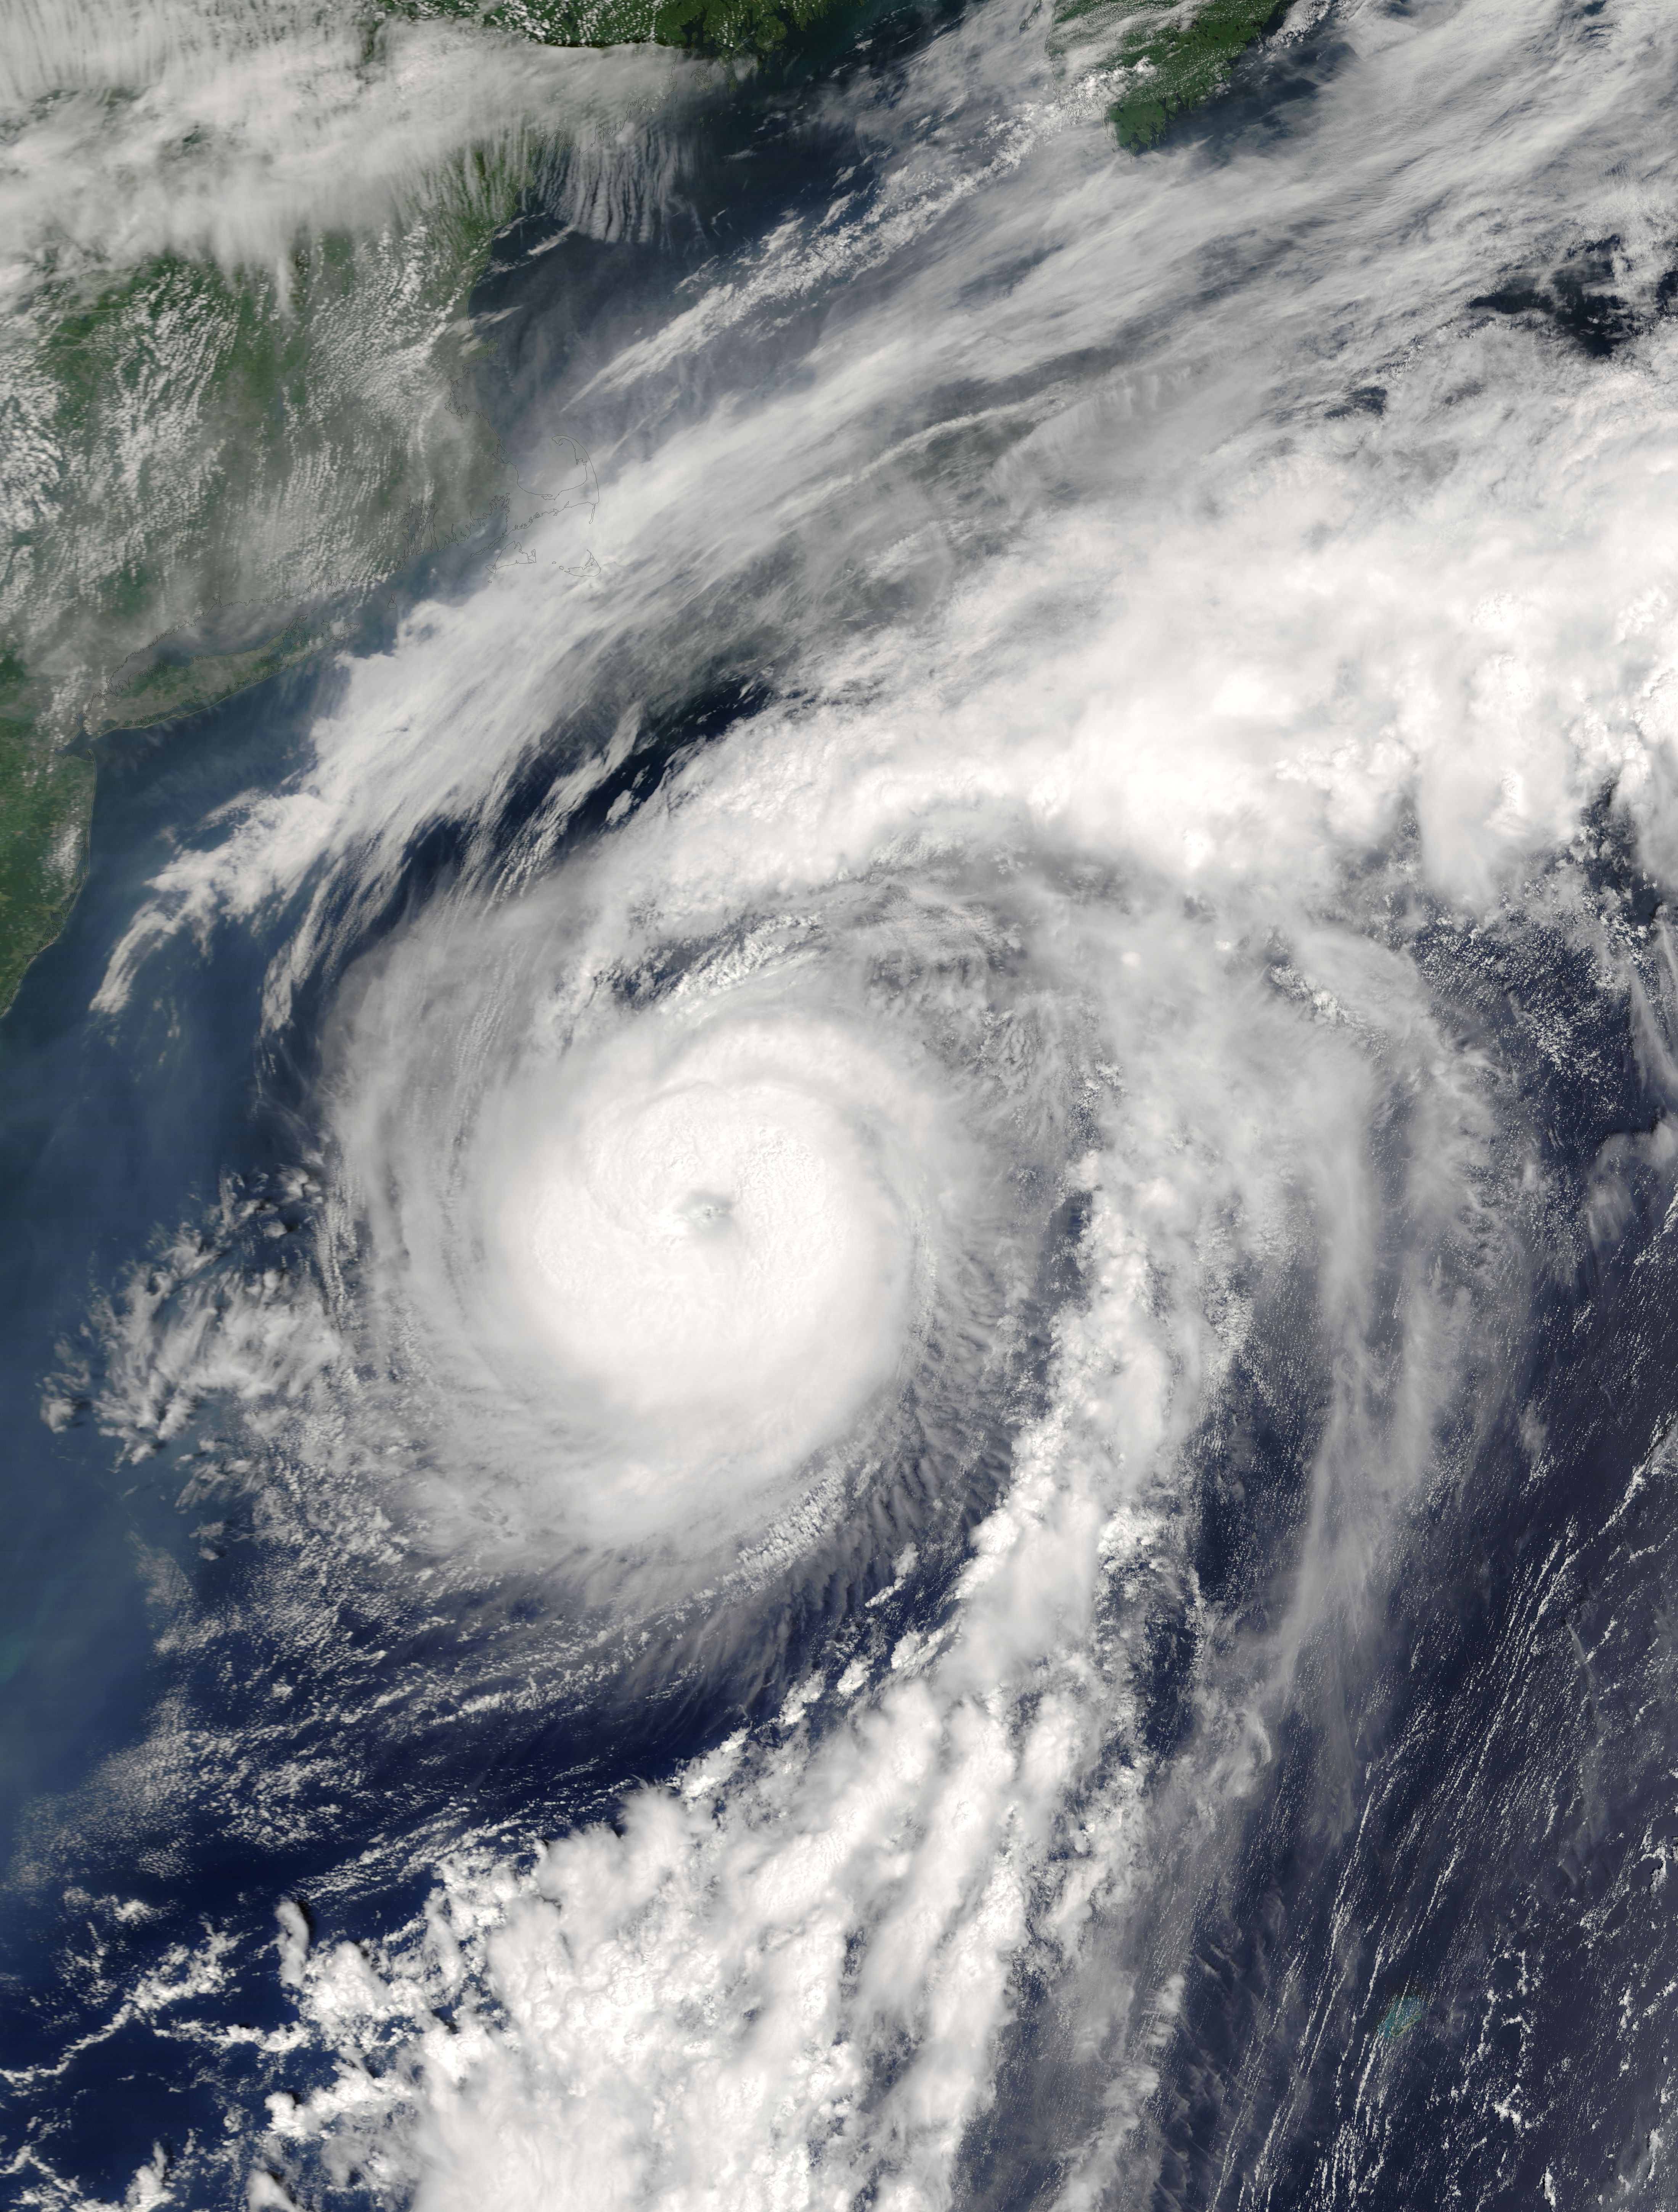 Hurricane Alex formed and moved along the axis of the Gulf Stream in 2004.